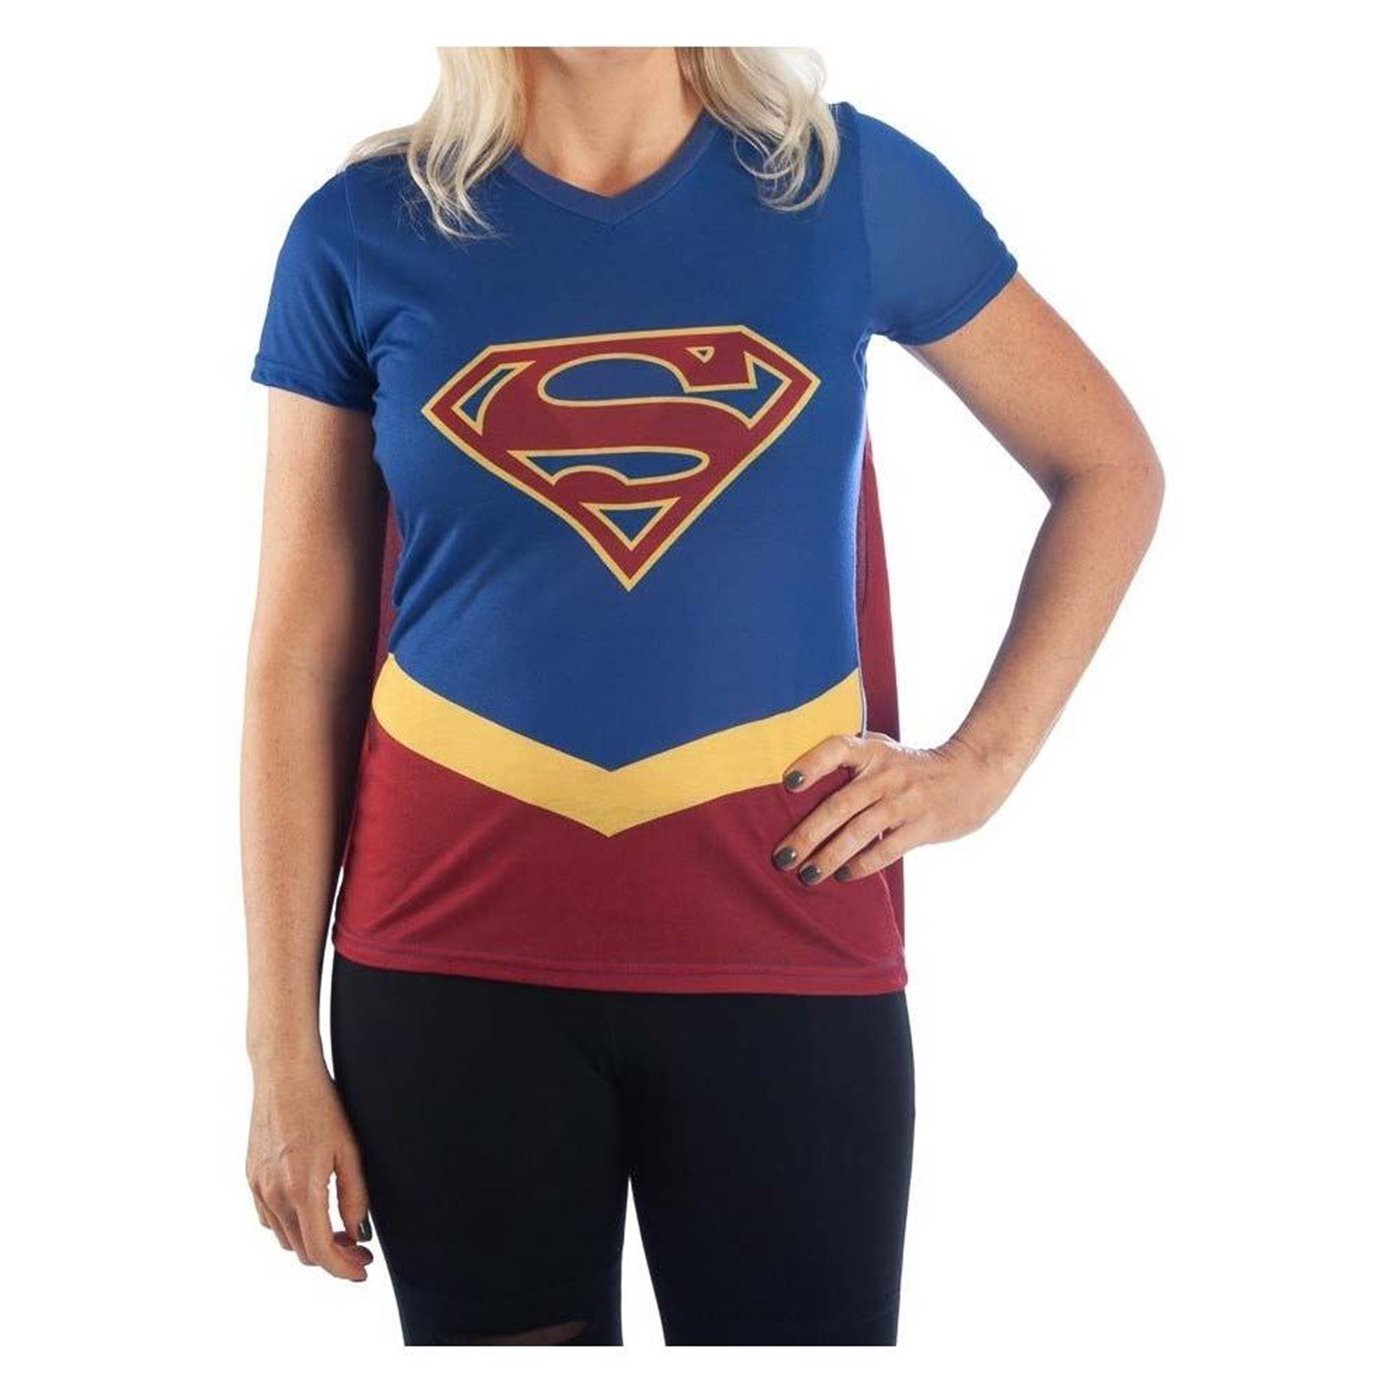 Supergirl Caped Costume Women's T-Shirt